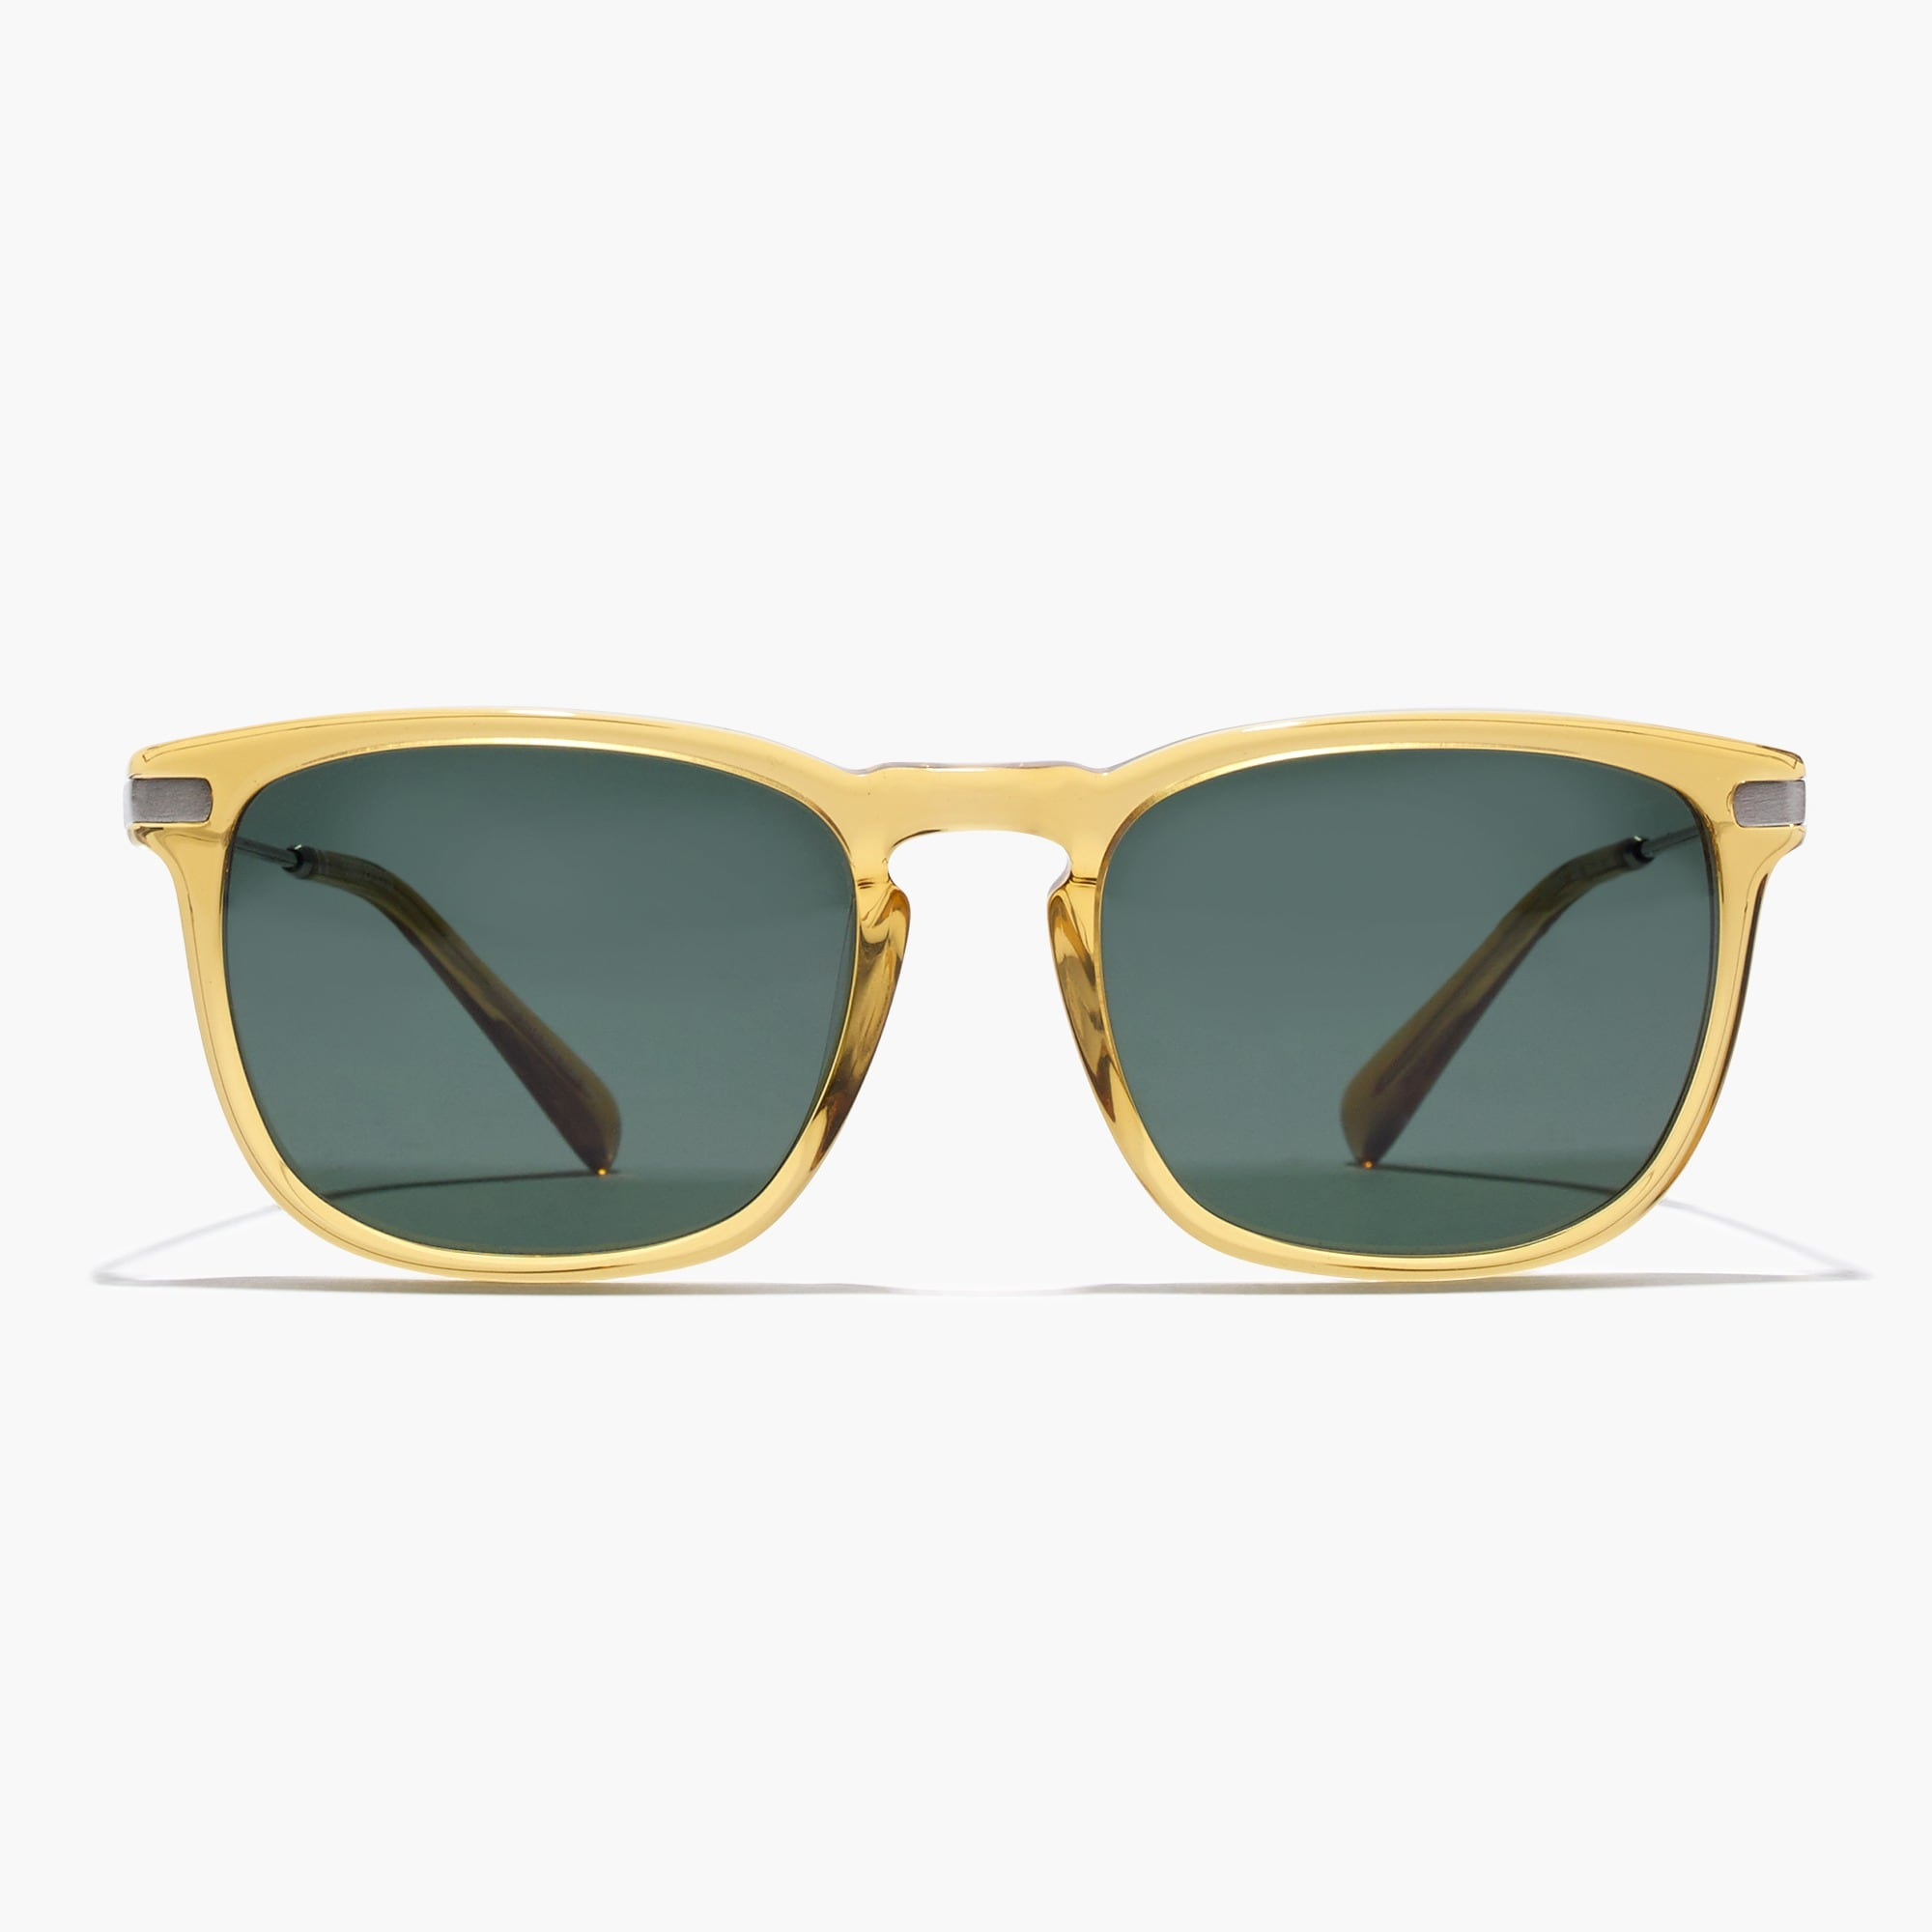 syd sunglasses : men's sunglasses